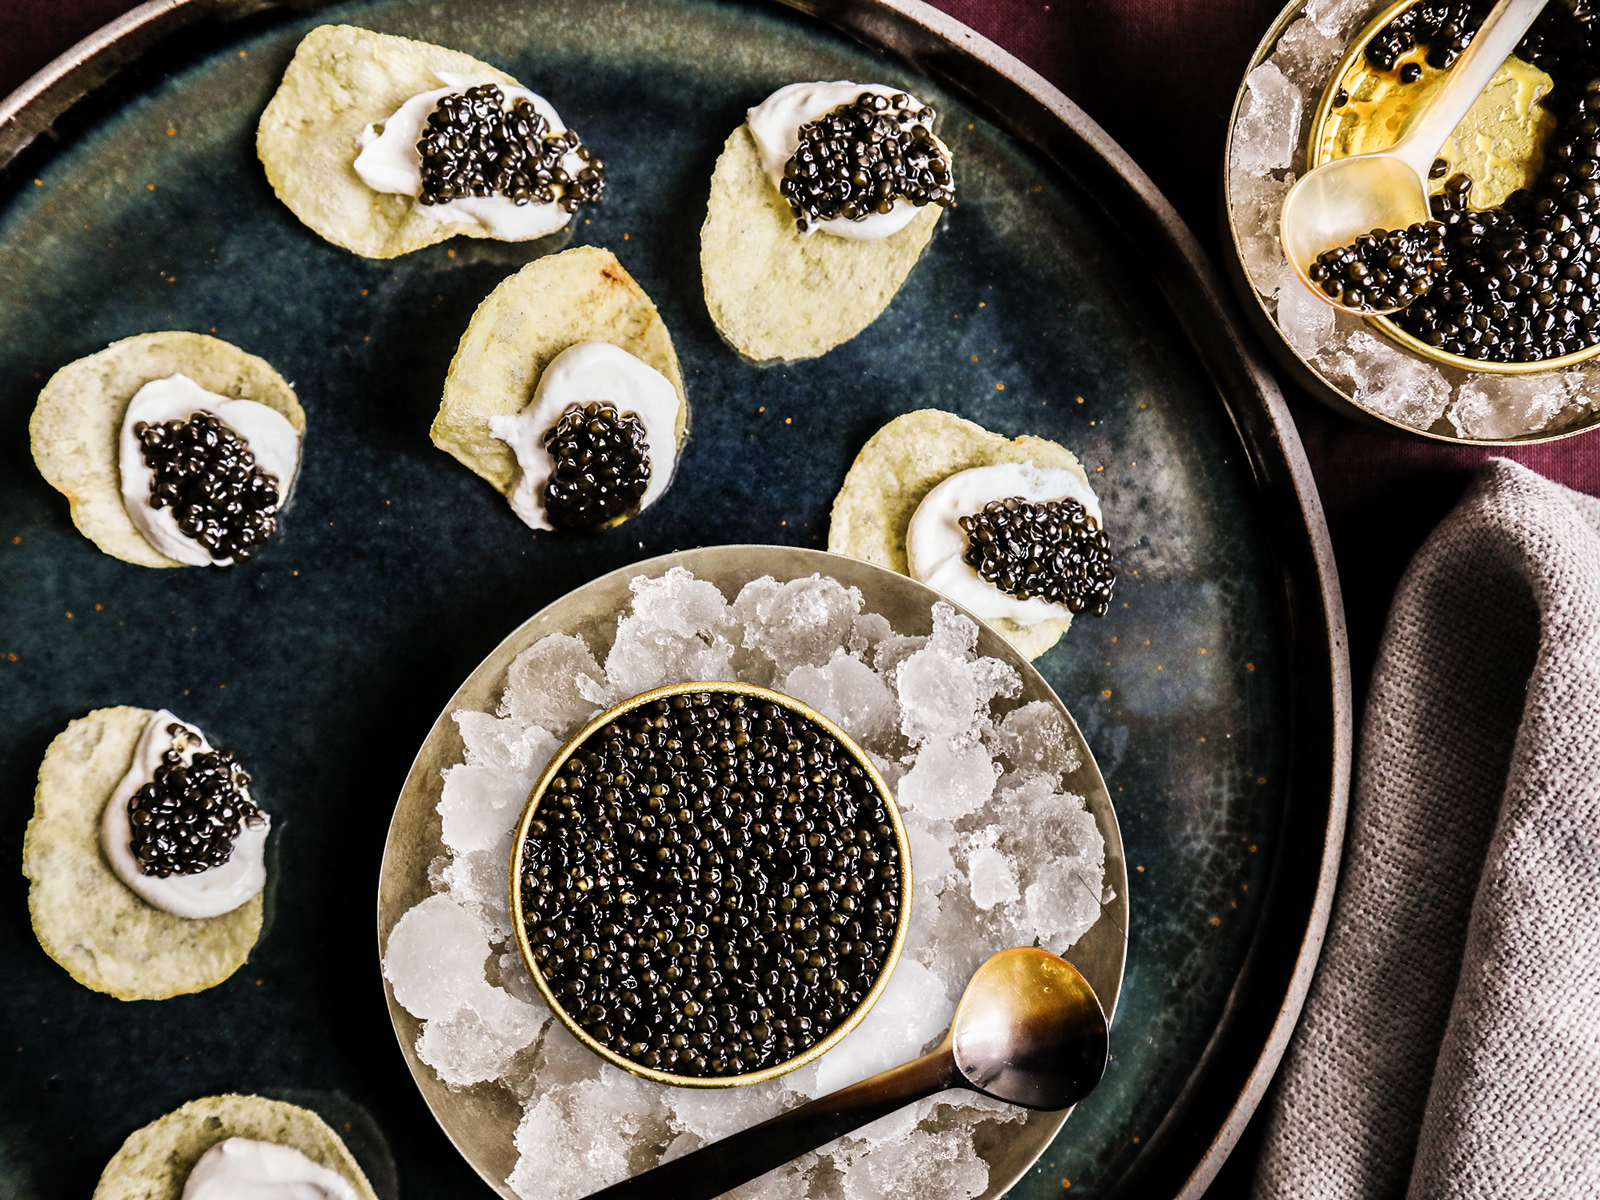 Myths About Caviar